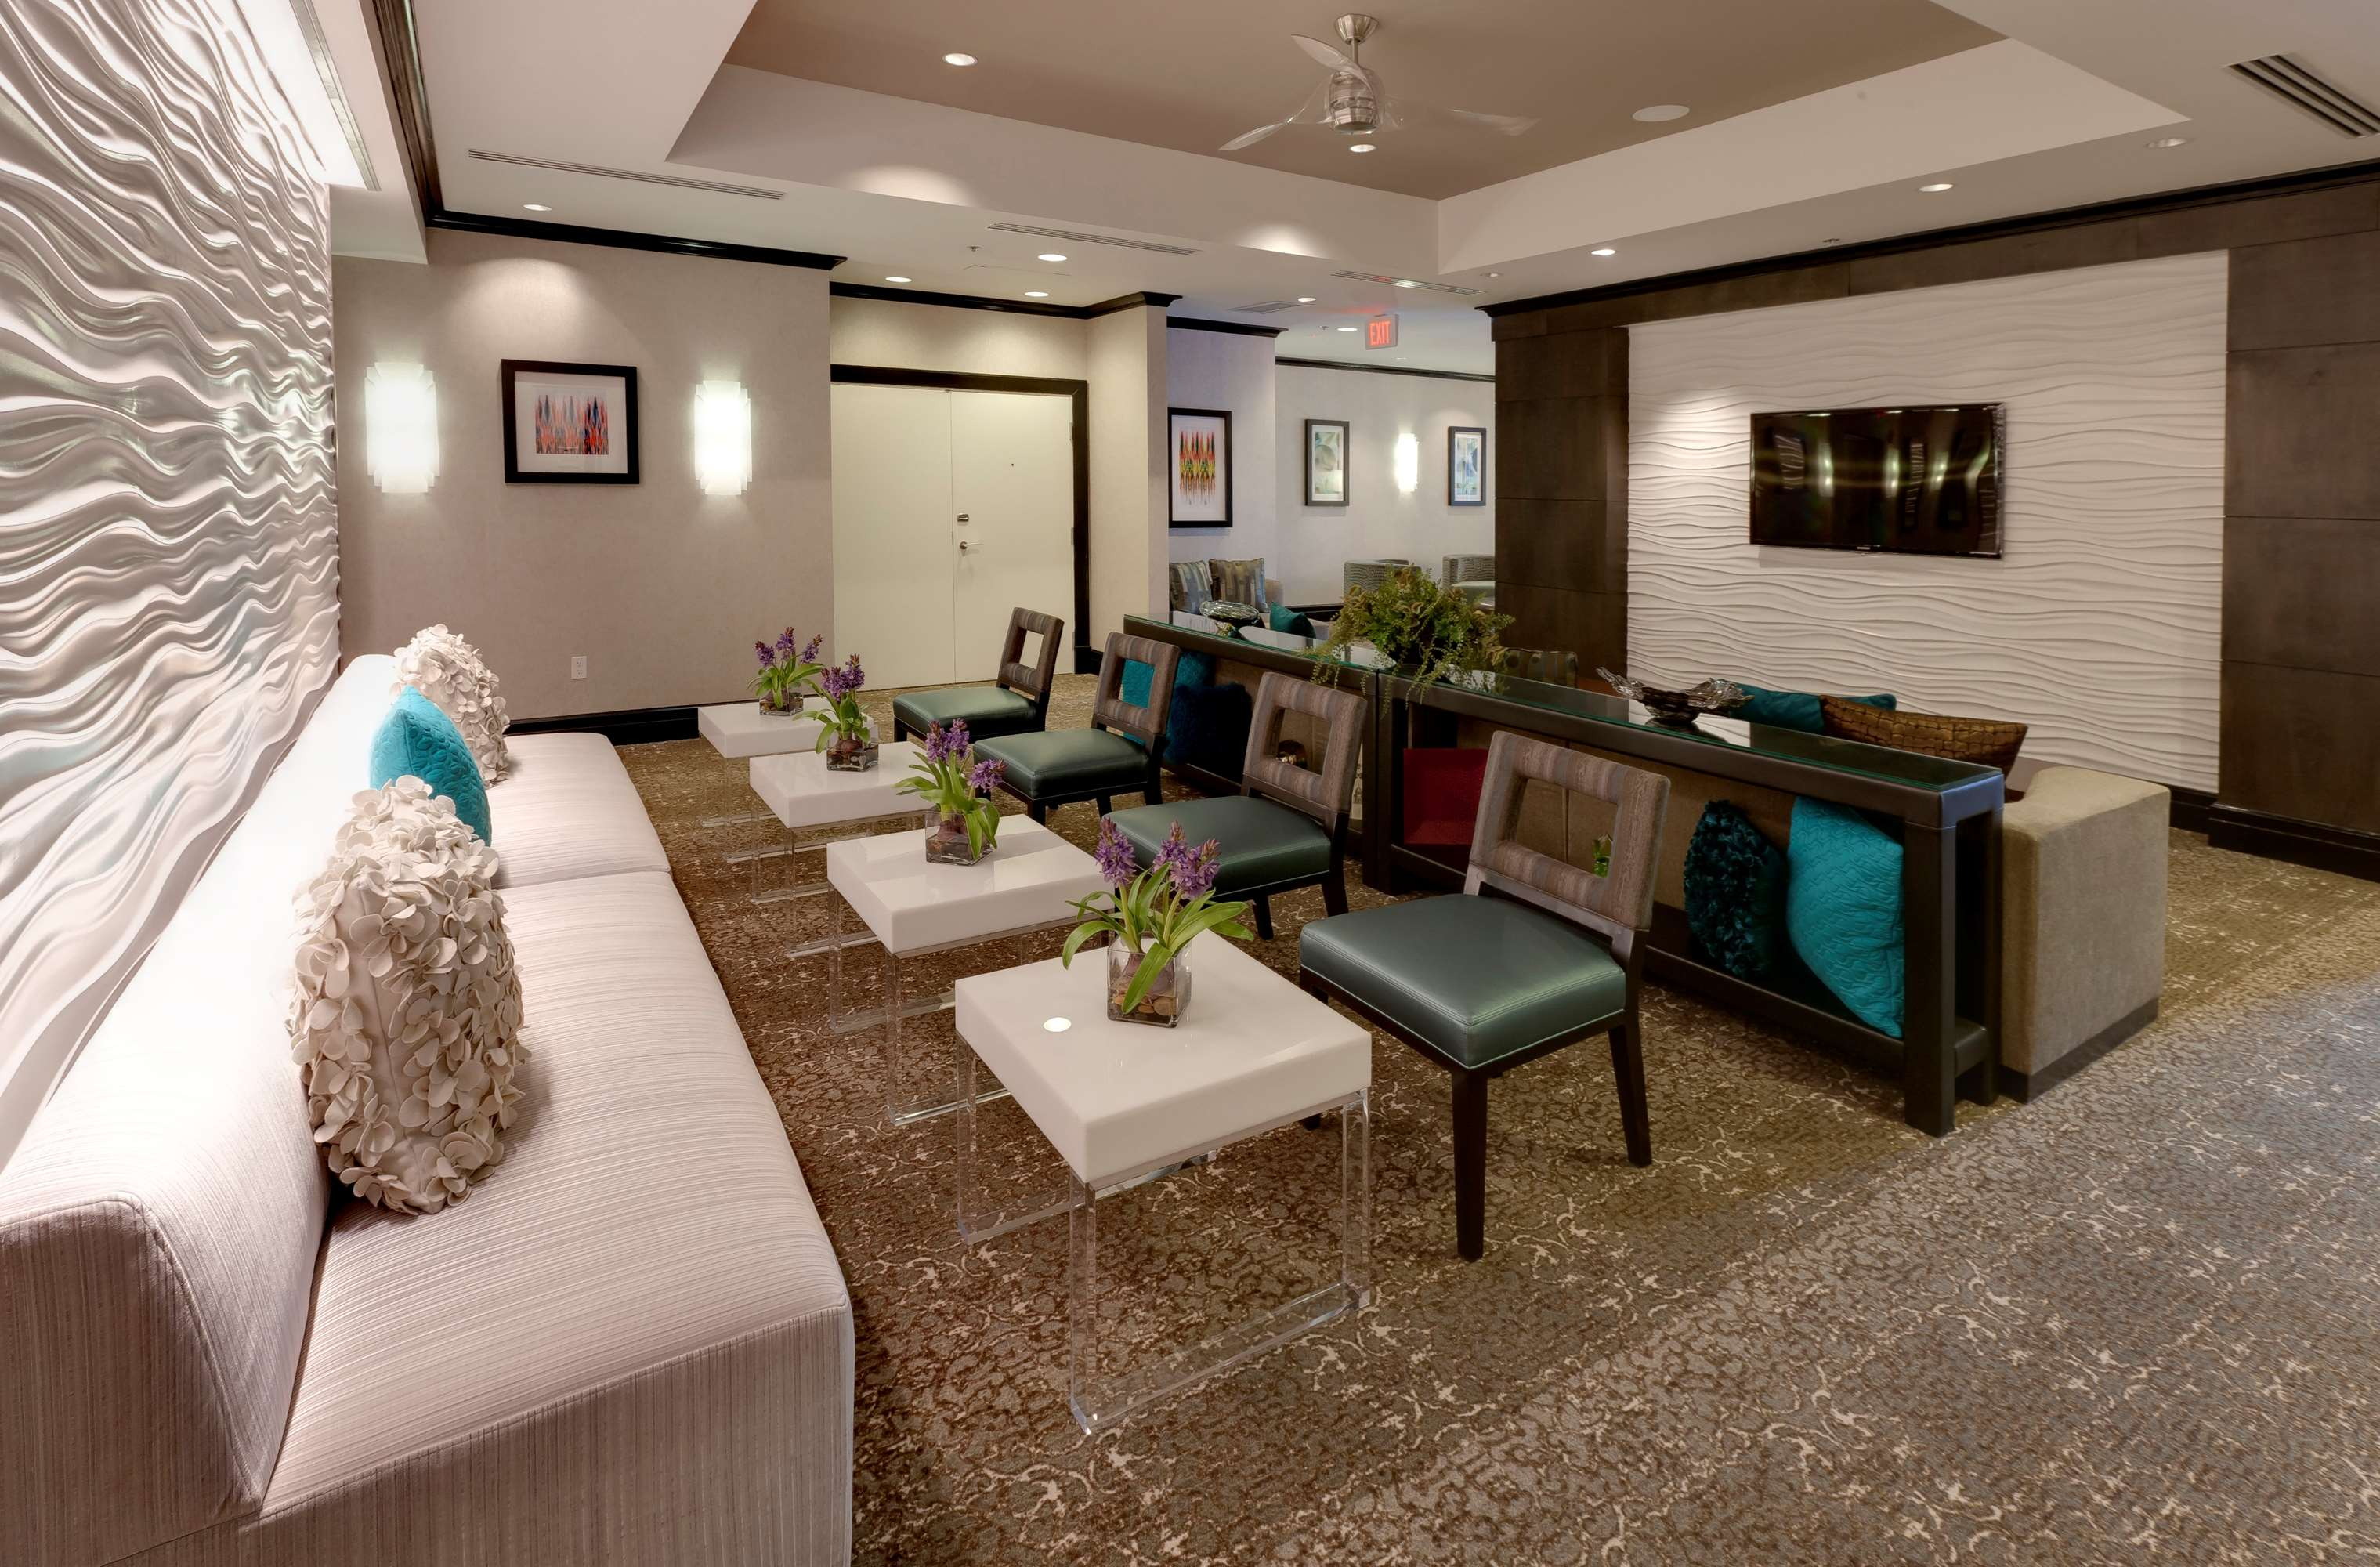 Homewood Suites by Hilton Boston/Canton, MA image 5